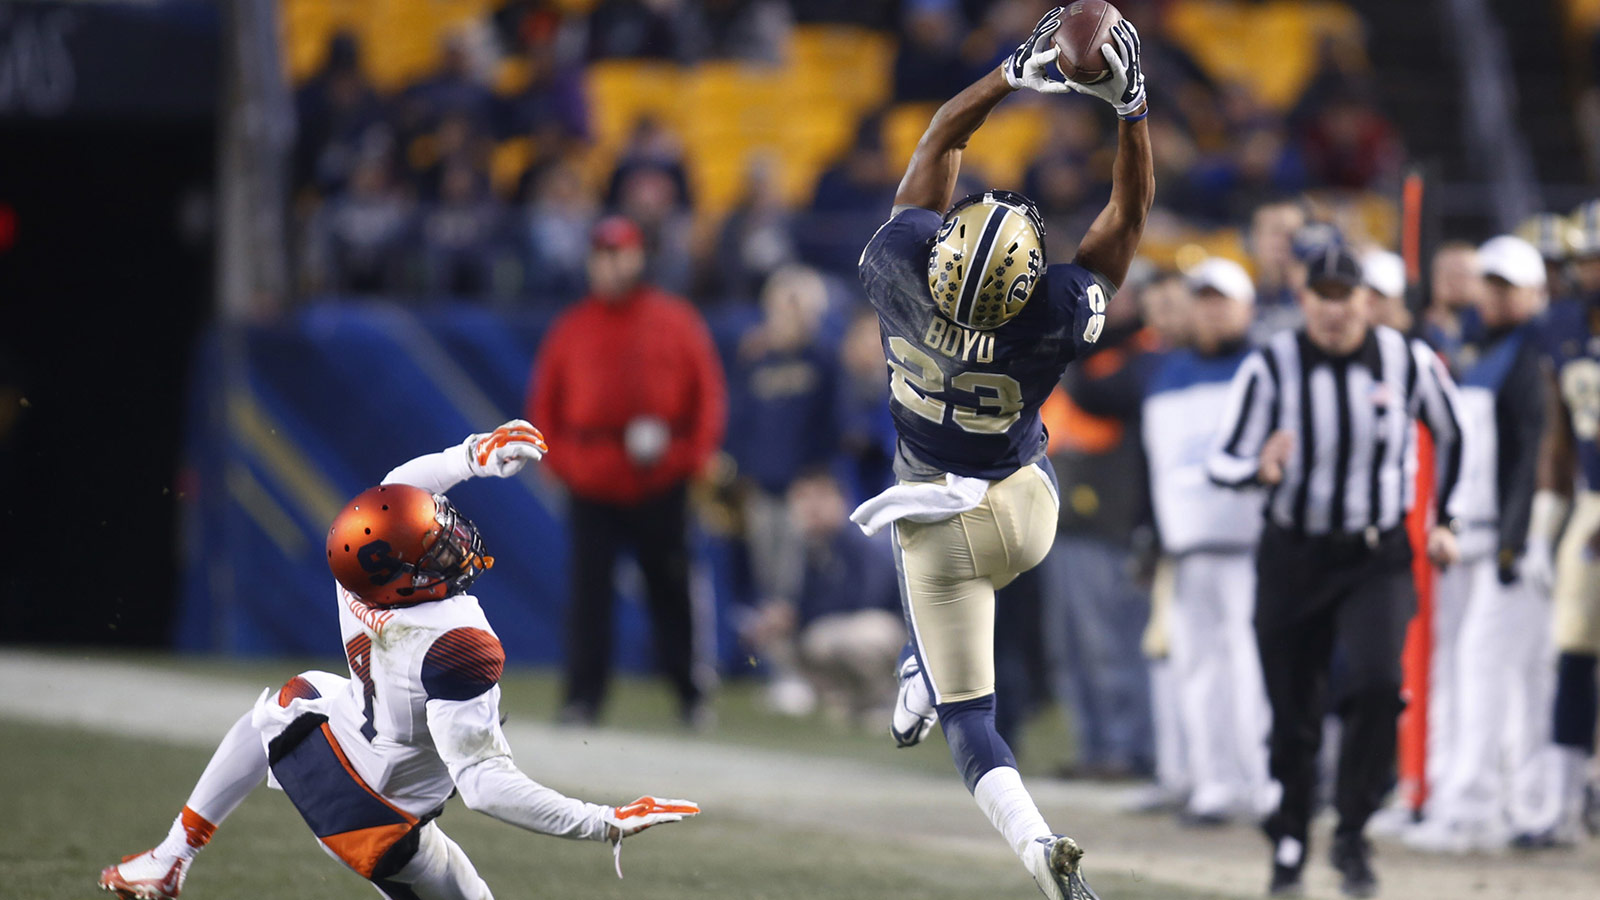 10 NFL Draft sleepers your team could snag in late rounds